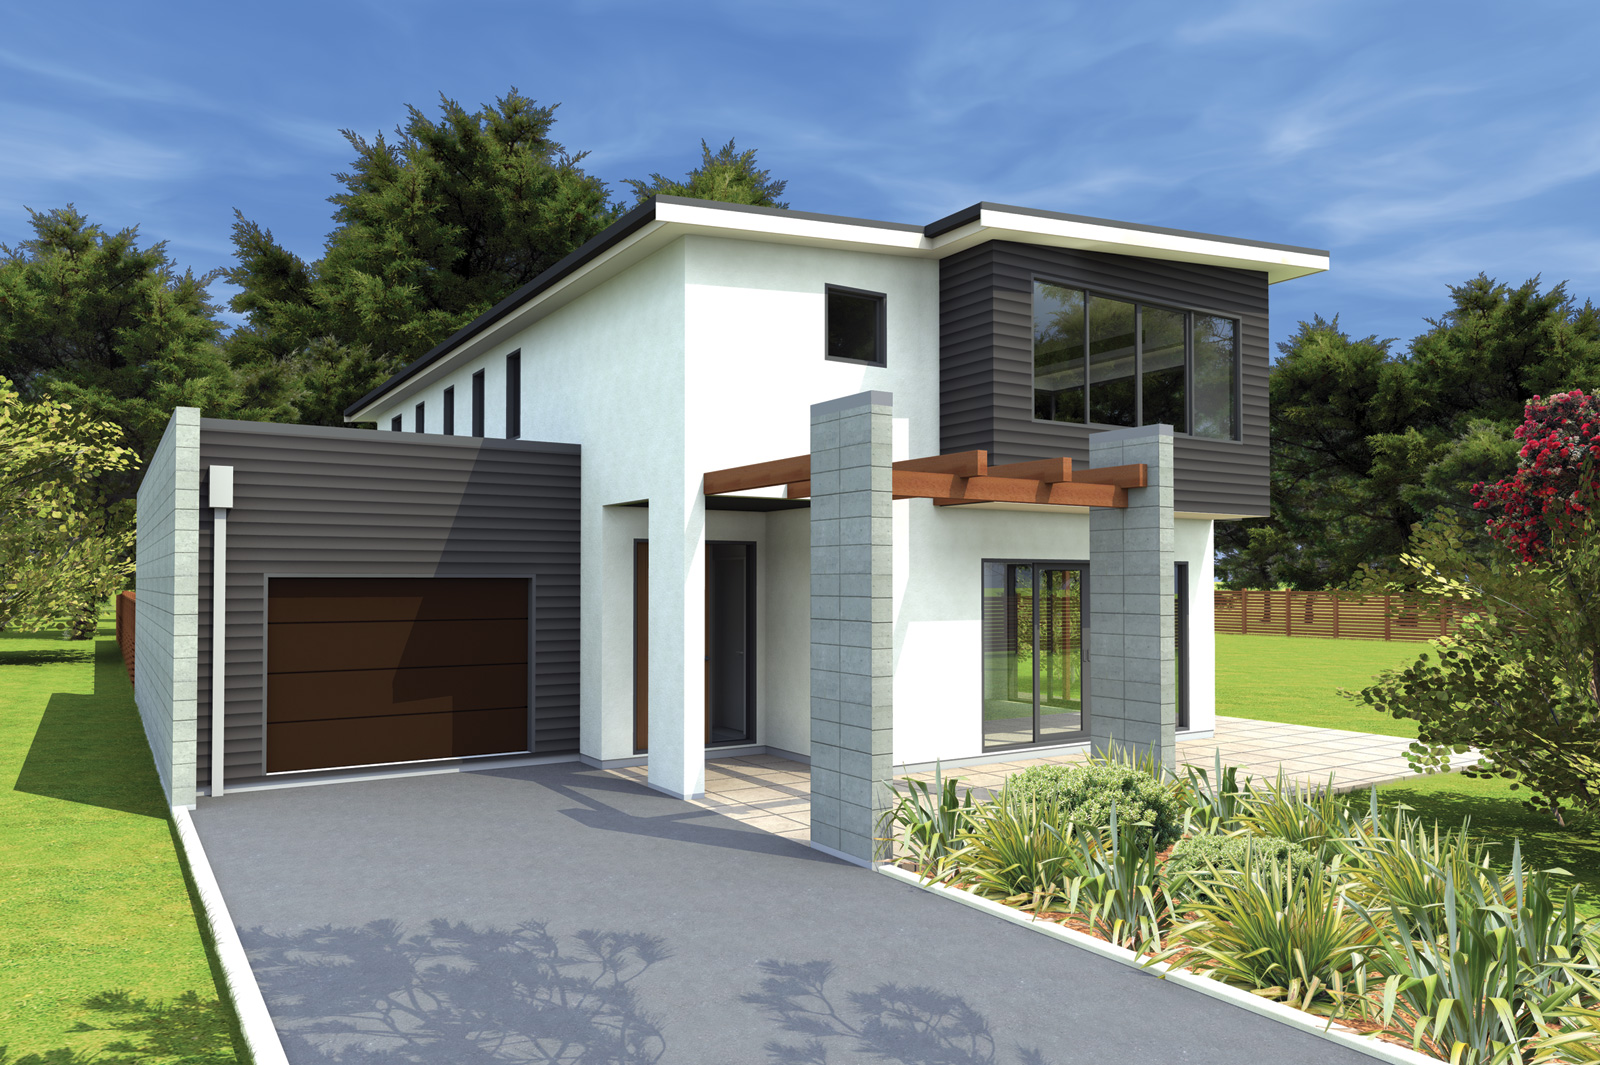 New home designs latest new modern homes designs new for Small home designs nz